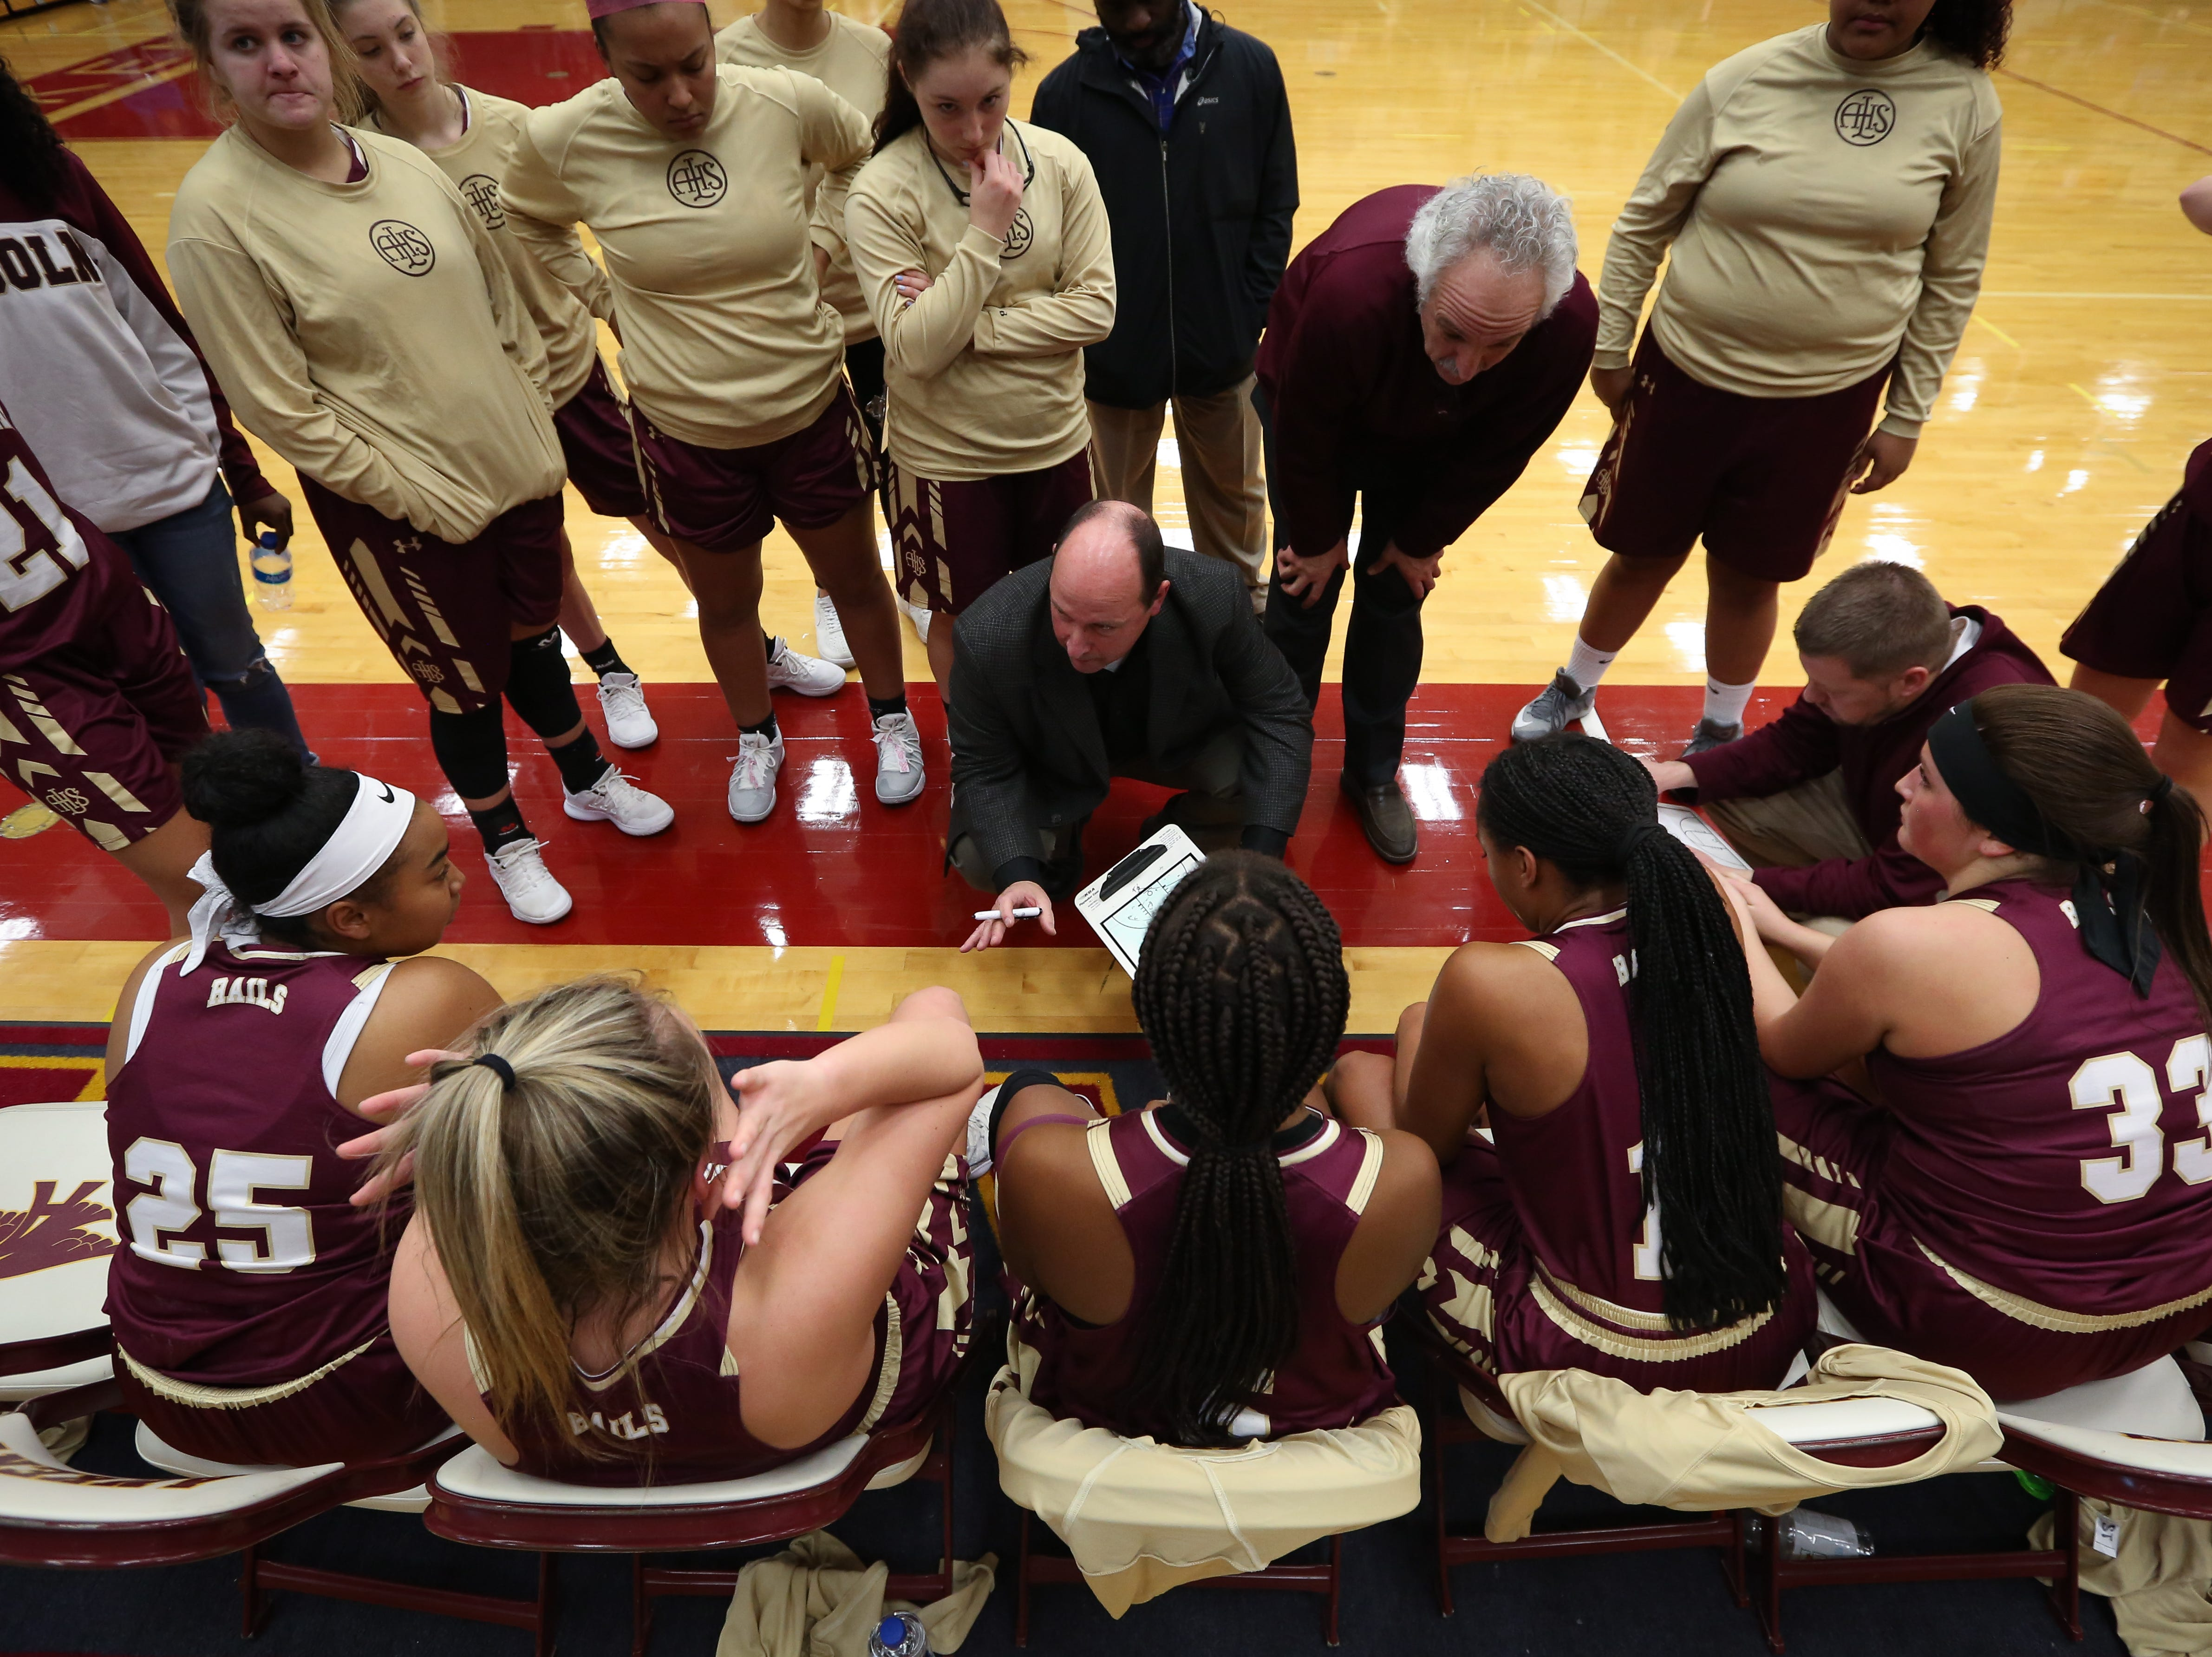 Lincoln head coach Scott Harrison gives instructions to his players during a girls high school basketball game between the Lincoln Railsplitters and the Ankeny Hawks at Ankeny High School on Dec. 4, 2018 in Ankeny, Iowa.